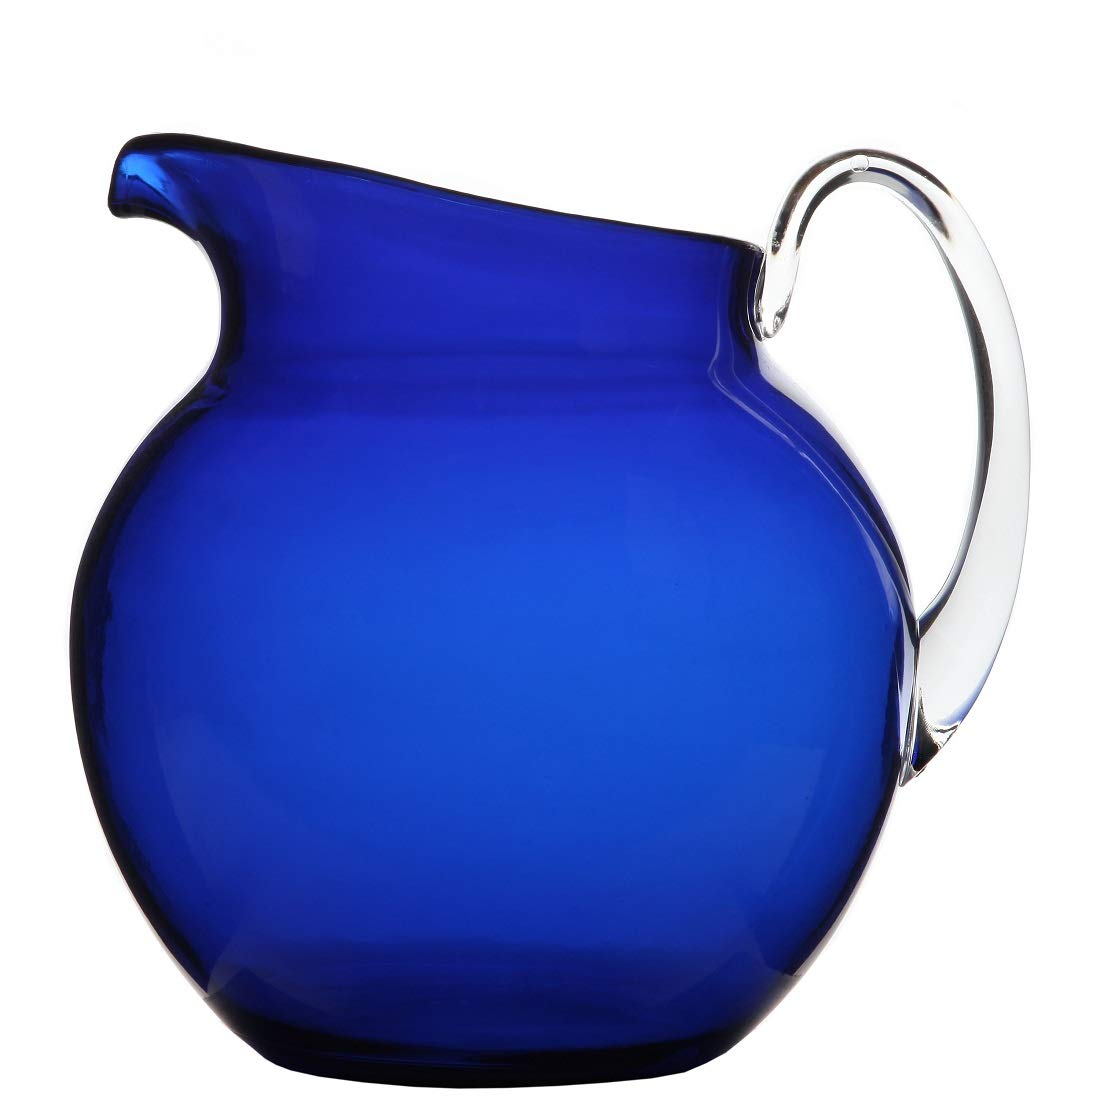 Lily's Home Shatterproof Plastic Pitcher, the Large Capacity Makes it Excellent for Parties, Both Indoor and Outdoor, Blue (110 Ounces) Lily's Home SW1091